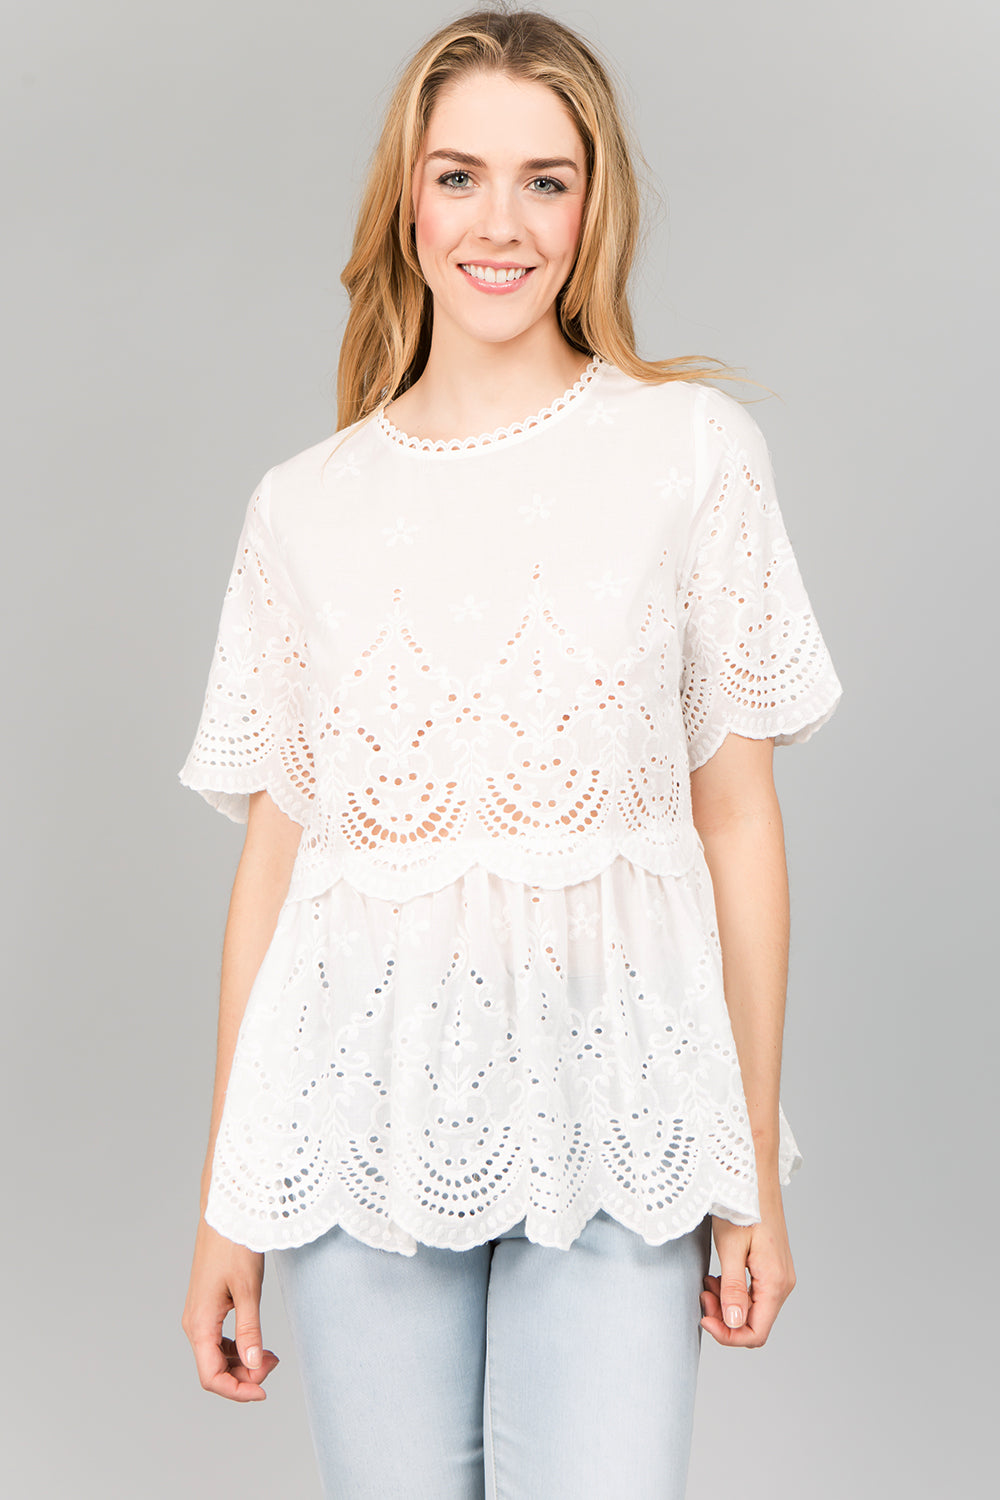 T2419 Embroidery Scallop Detail Peplum Top